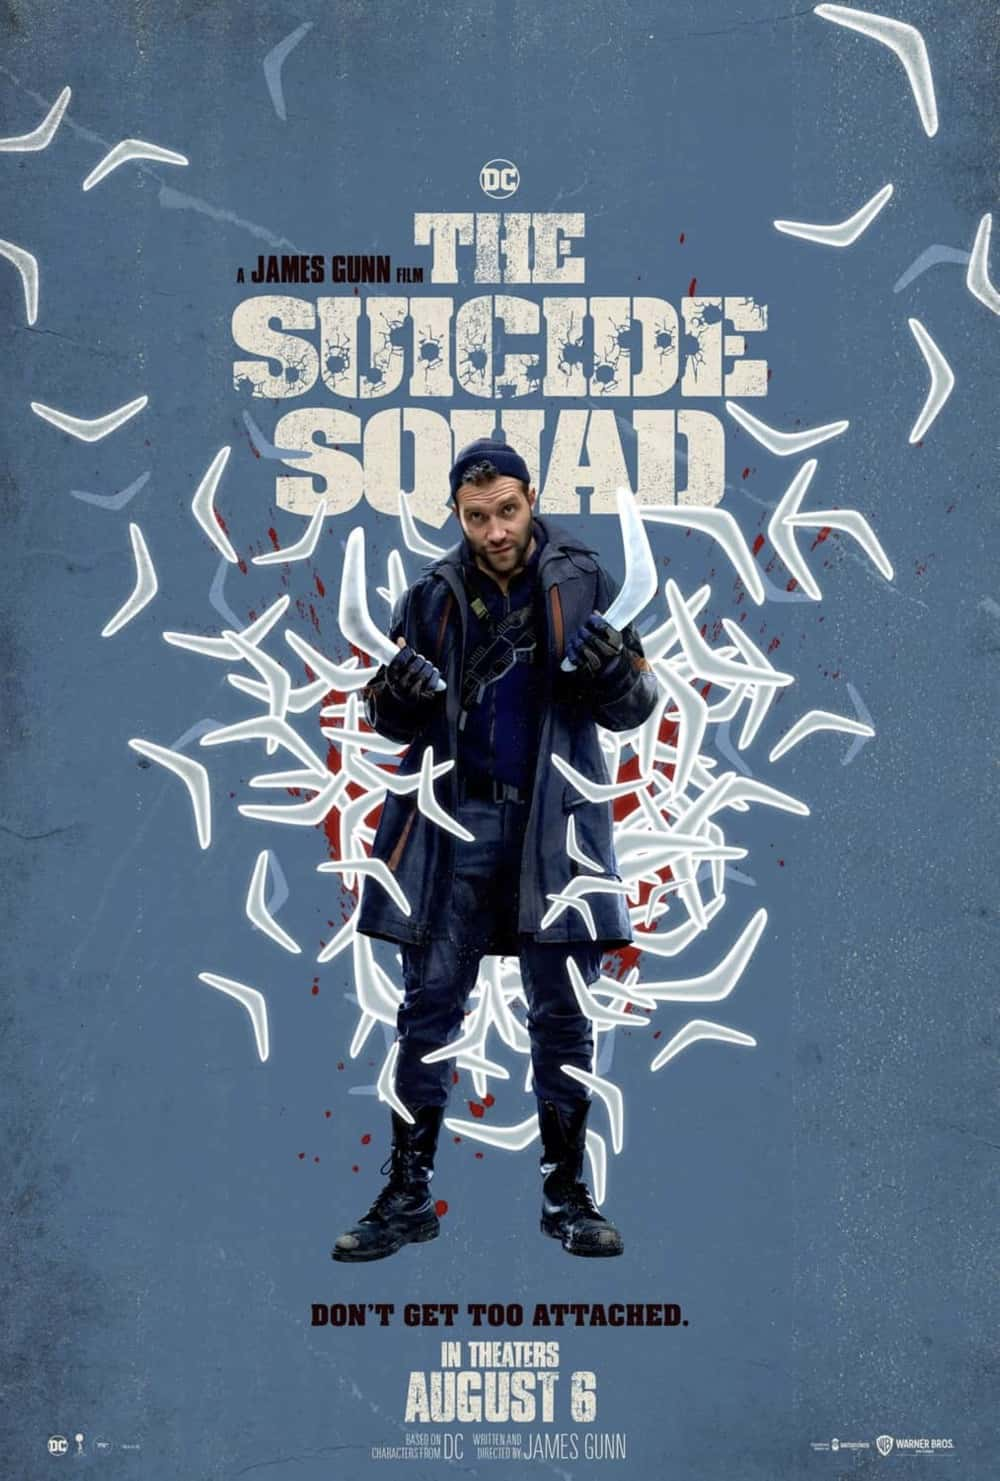 Jai Courtney as Captain Boomerang in The Suicide Squad